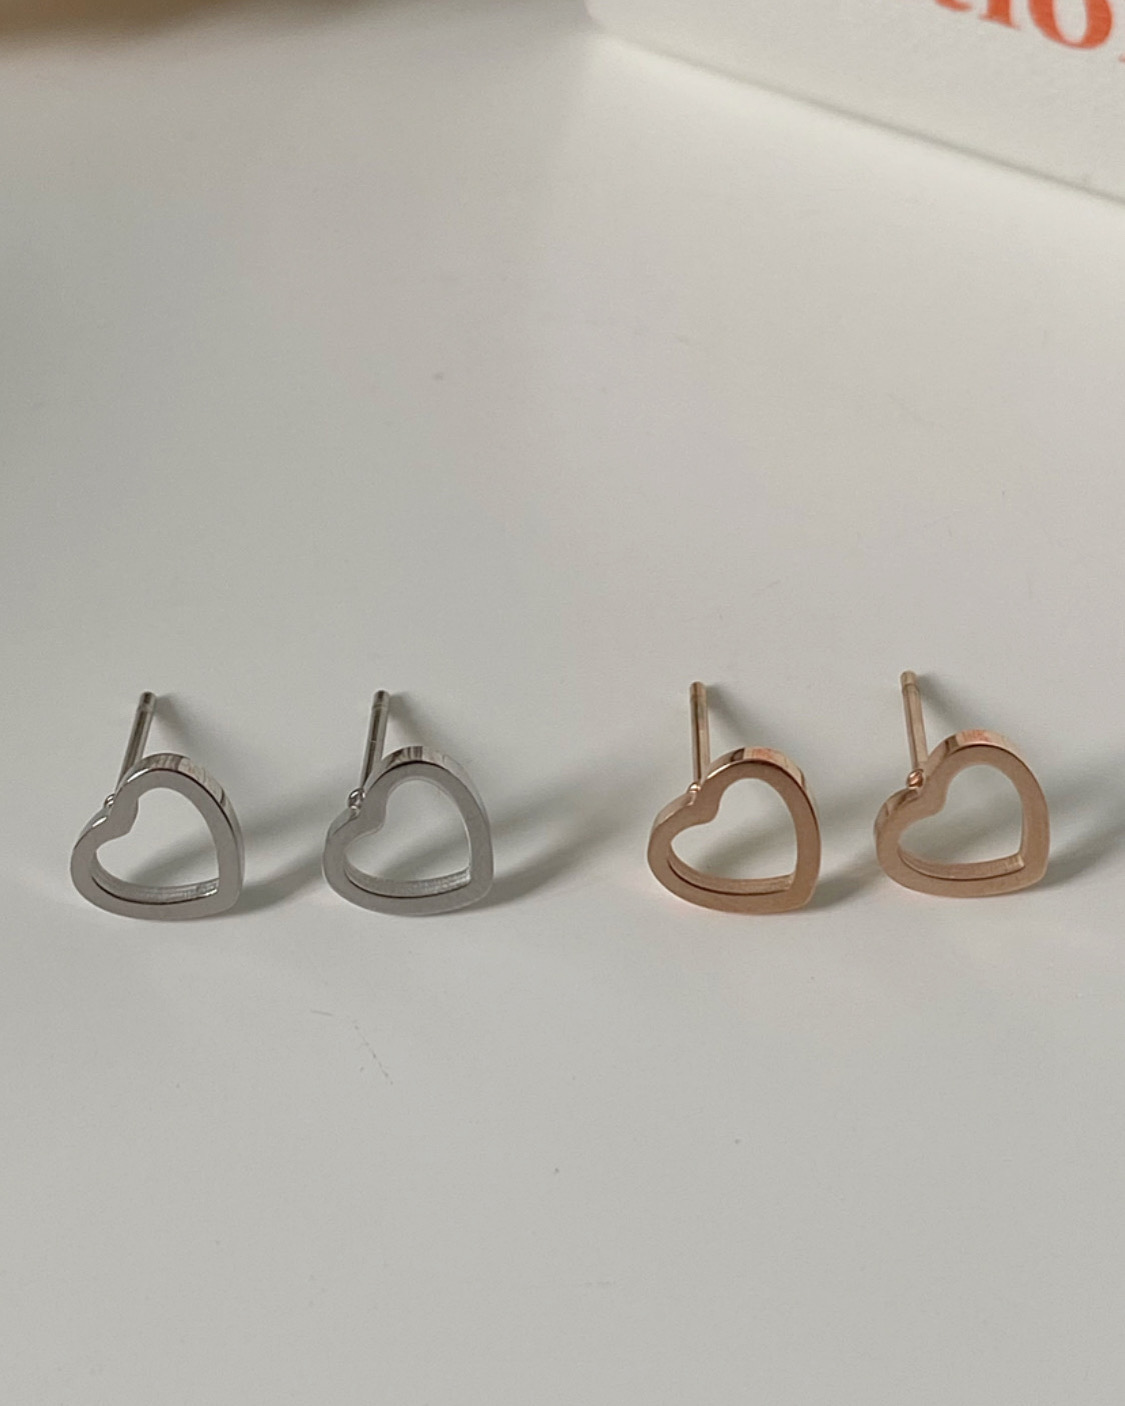 [써지컬스틸] steel heart earring (2 color)